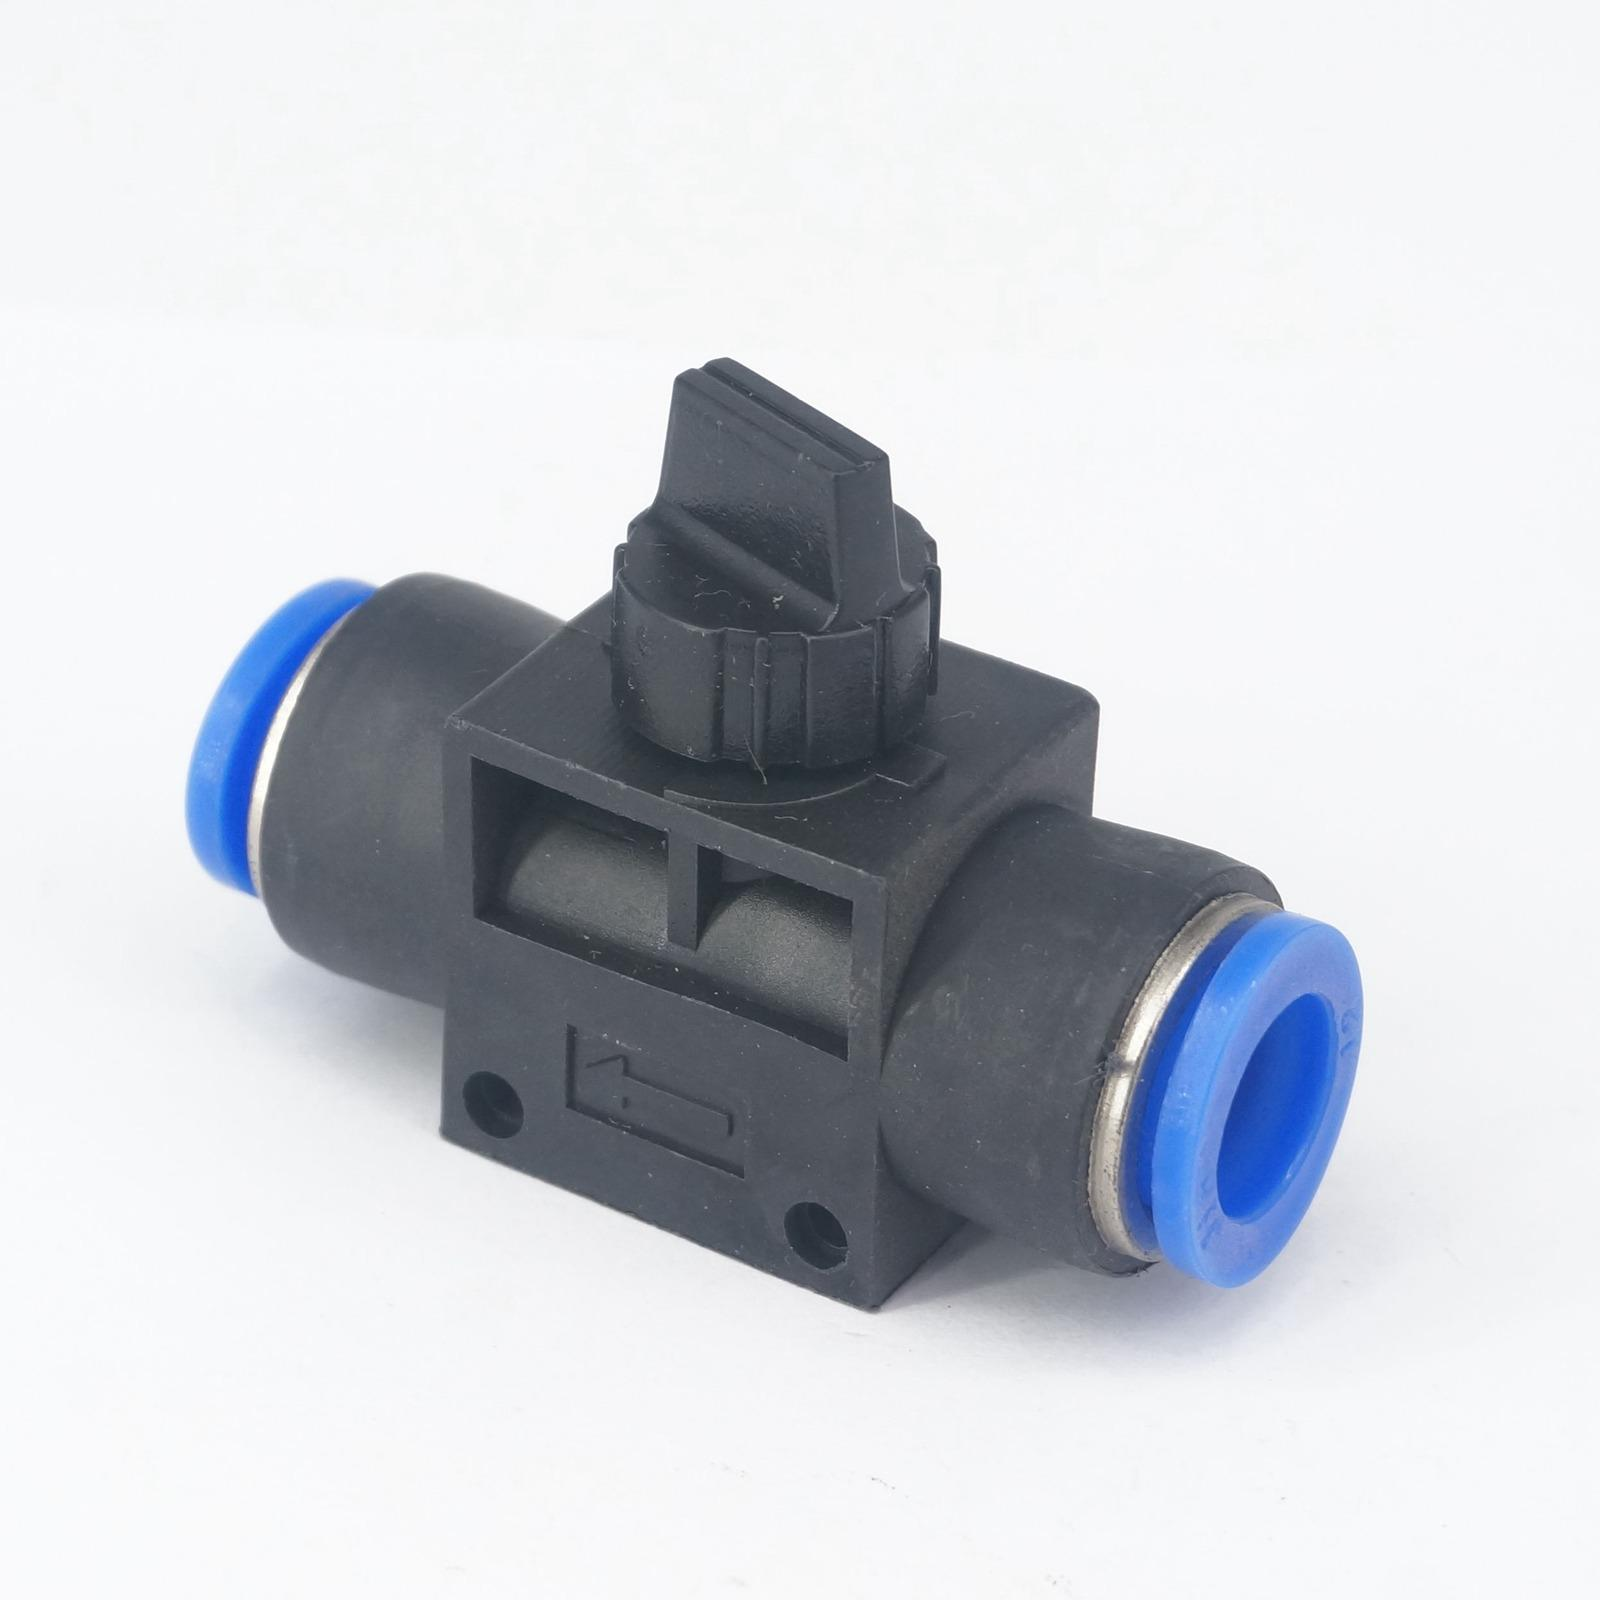 Fit Tube O/D 12mm Pneumatic ball Valve Hand Shut off Push In Connector Quick Release Air Fitting